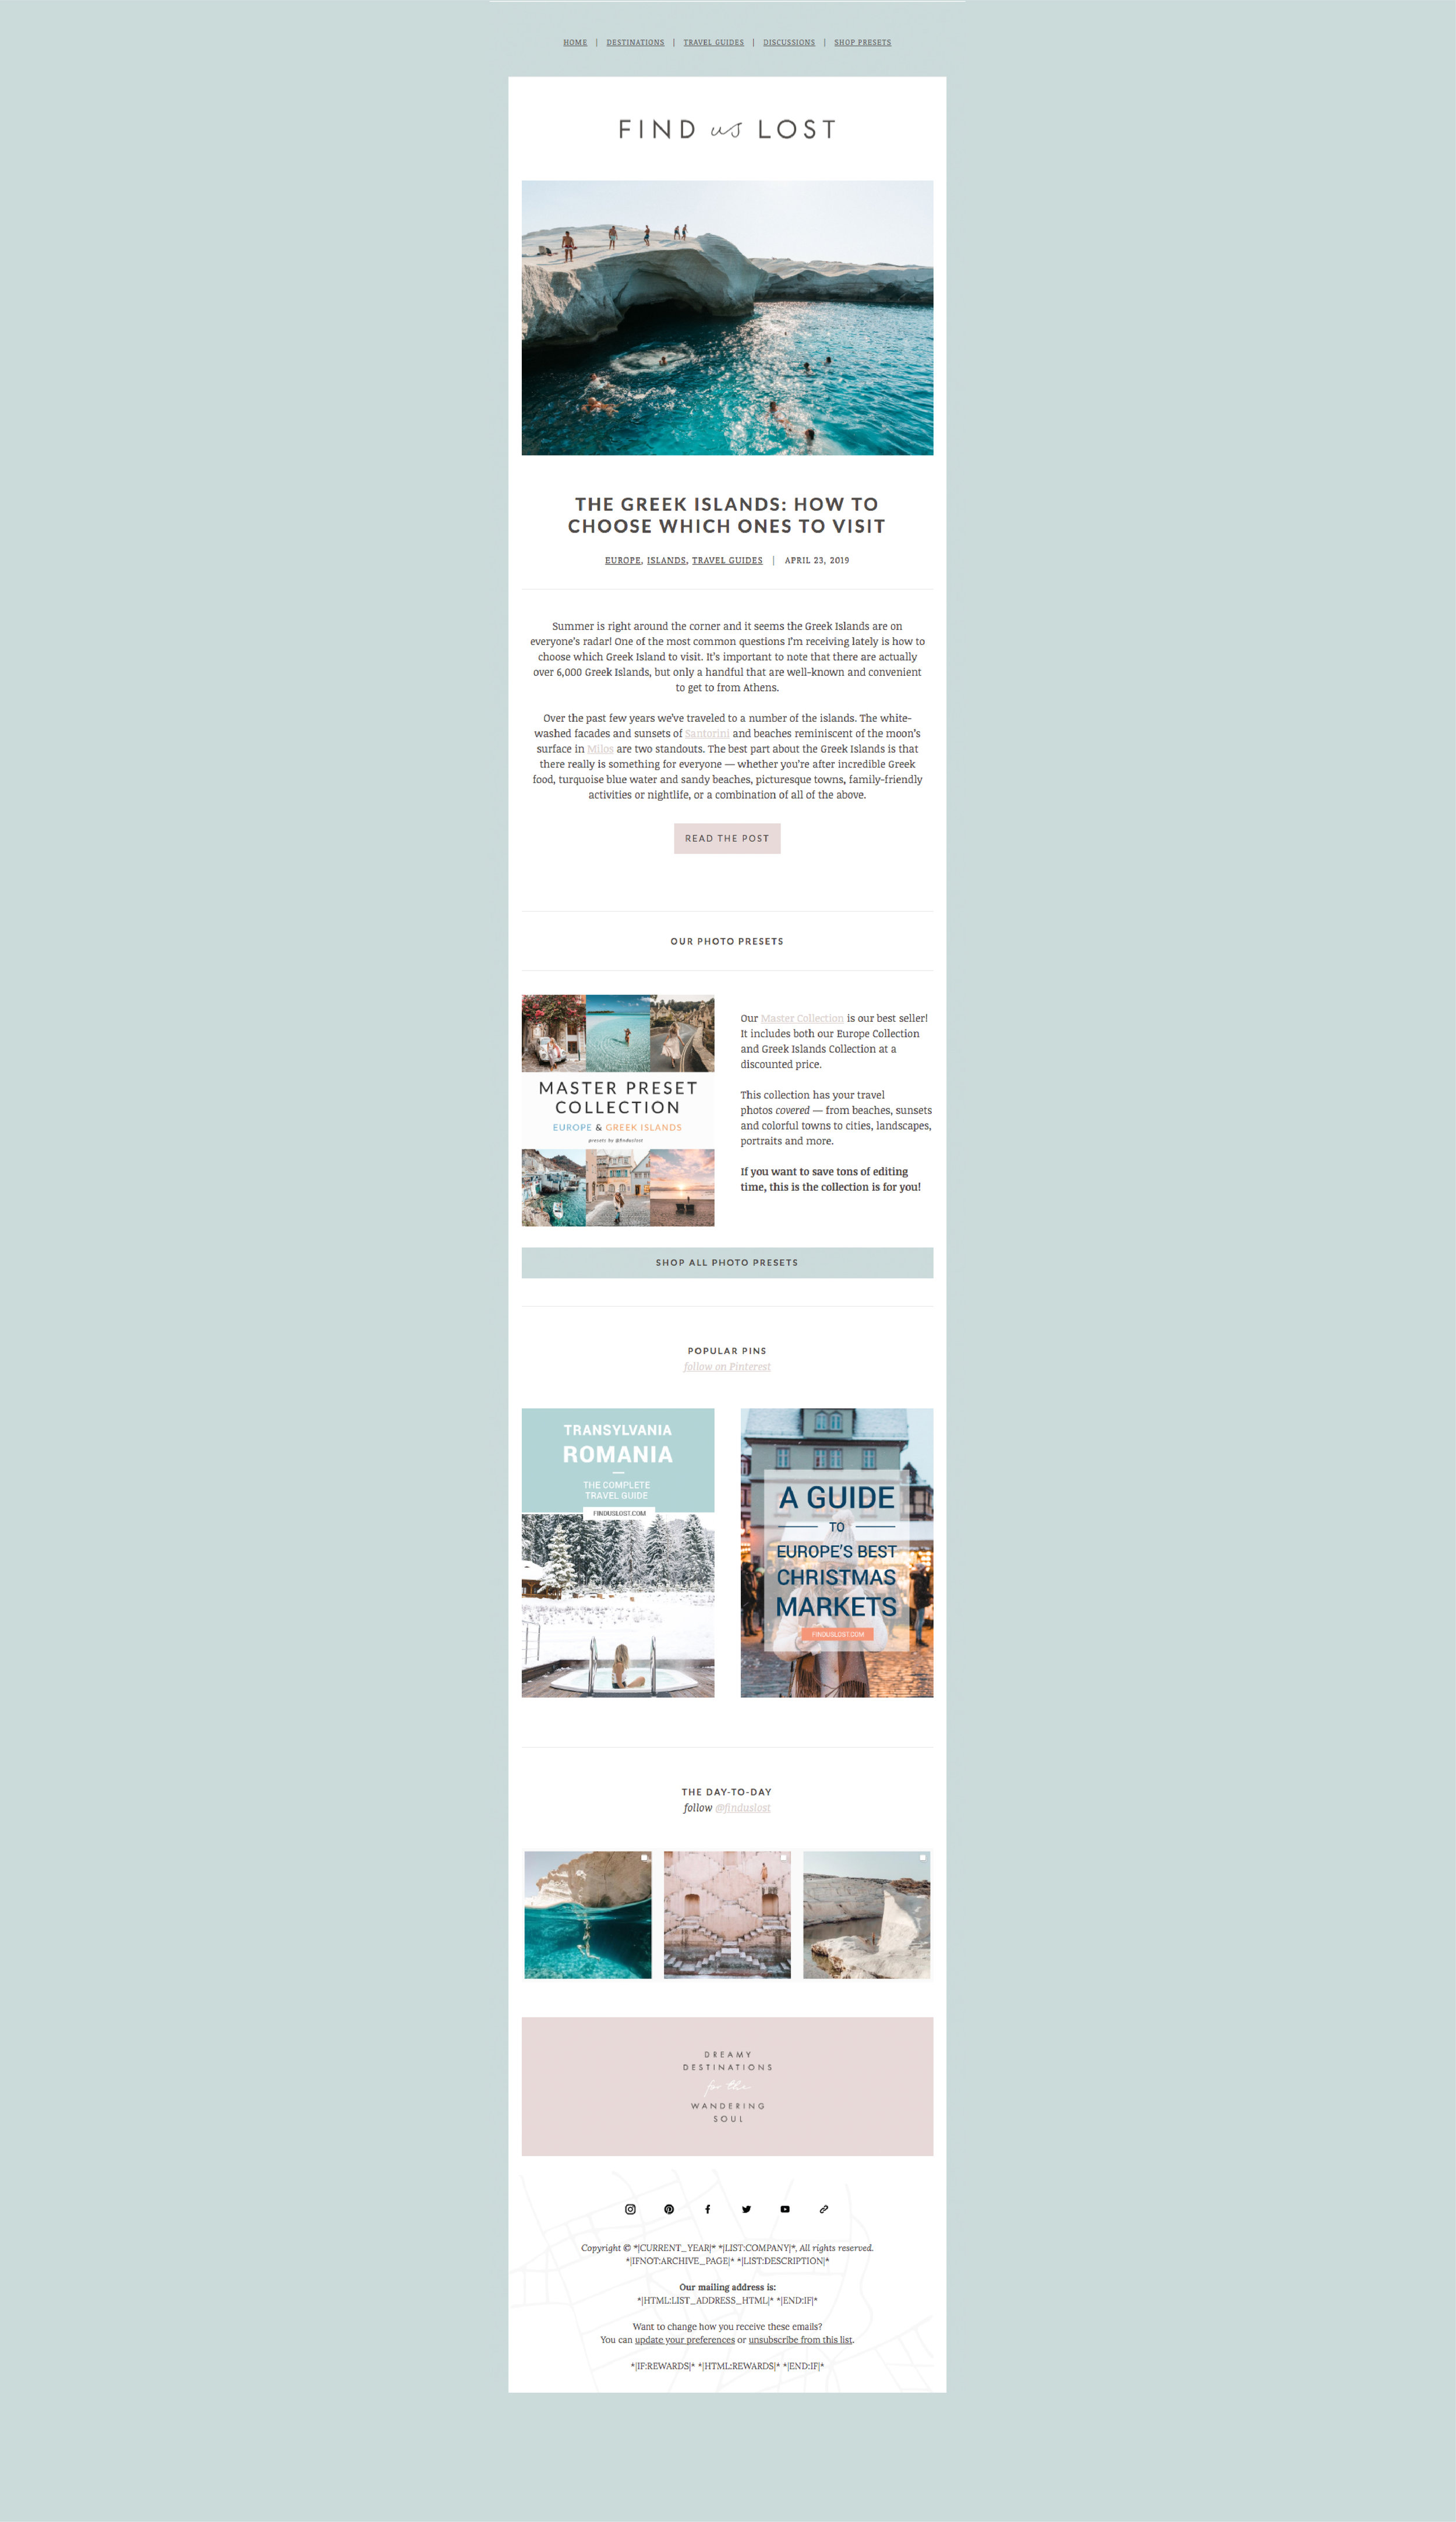 FUL_Collateral-Presentation-03.jpg